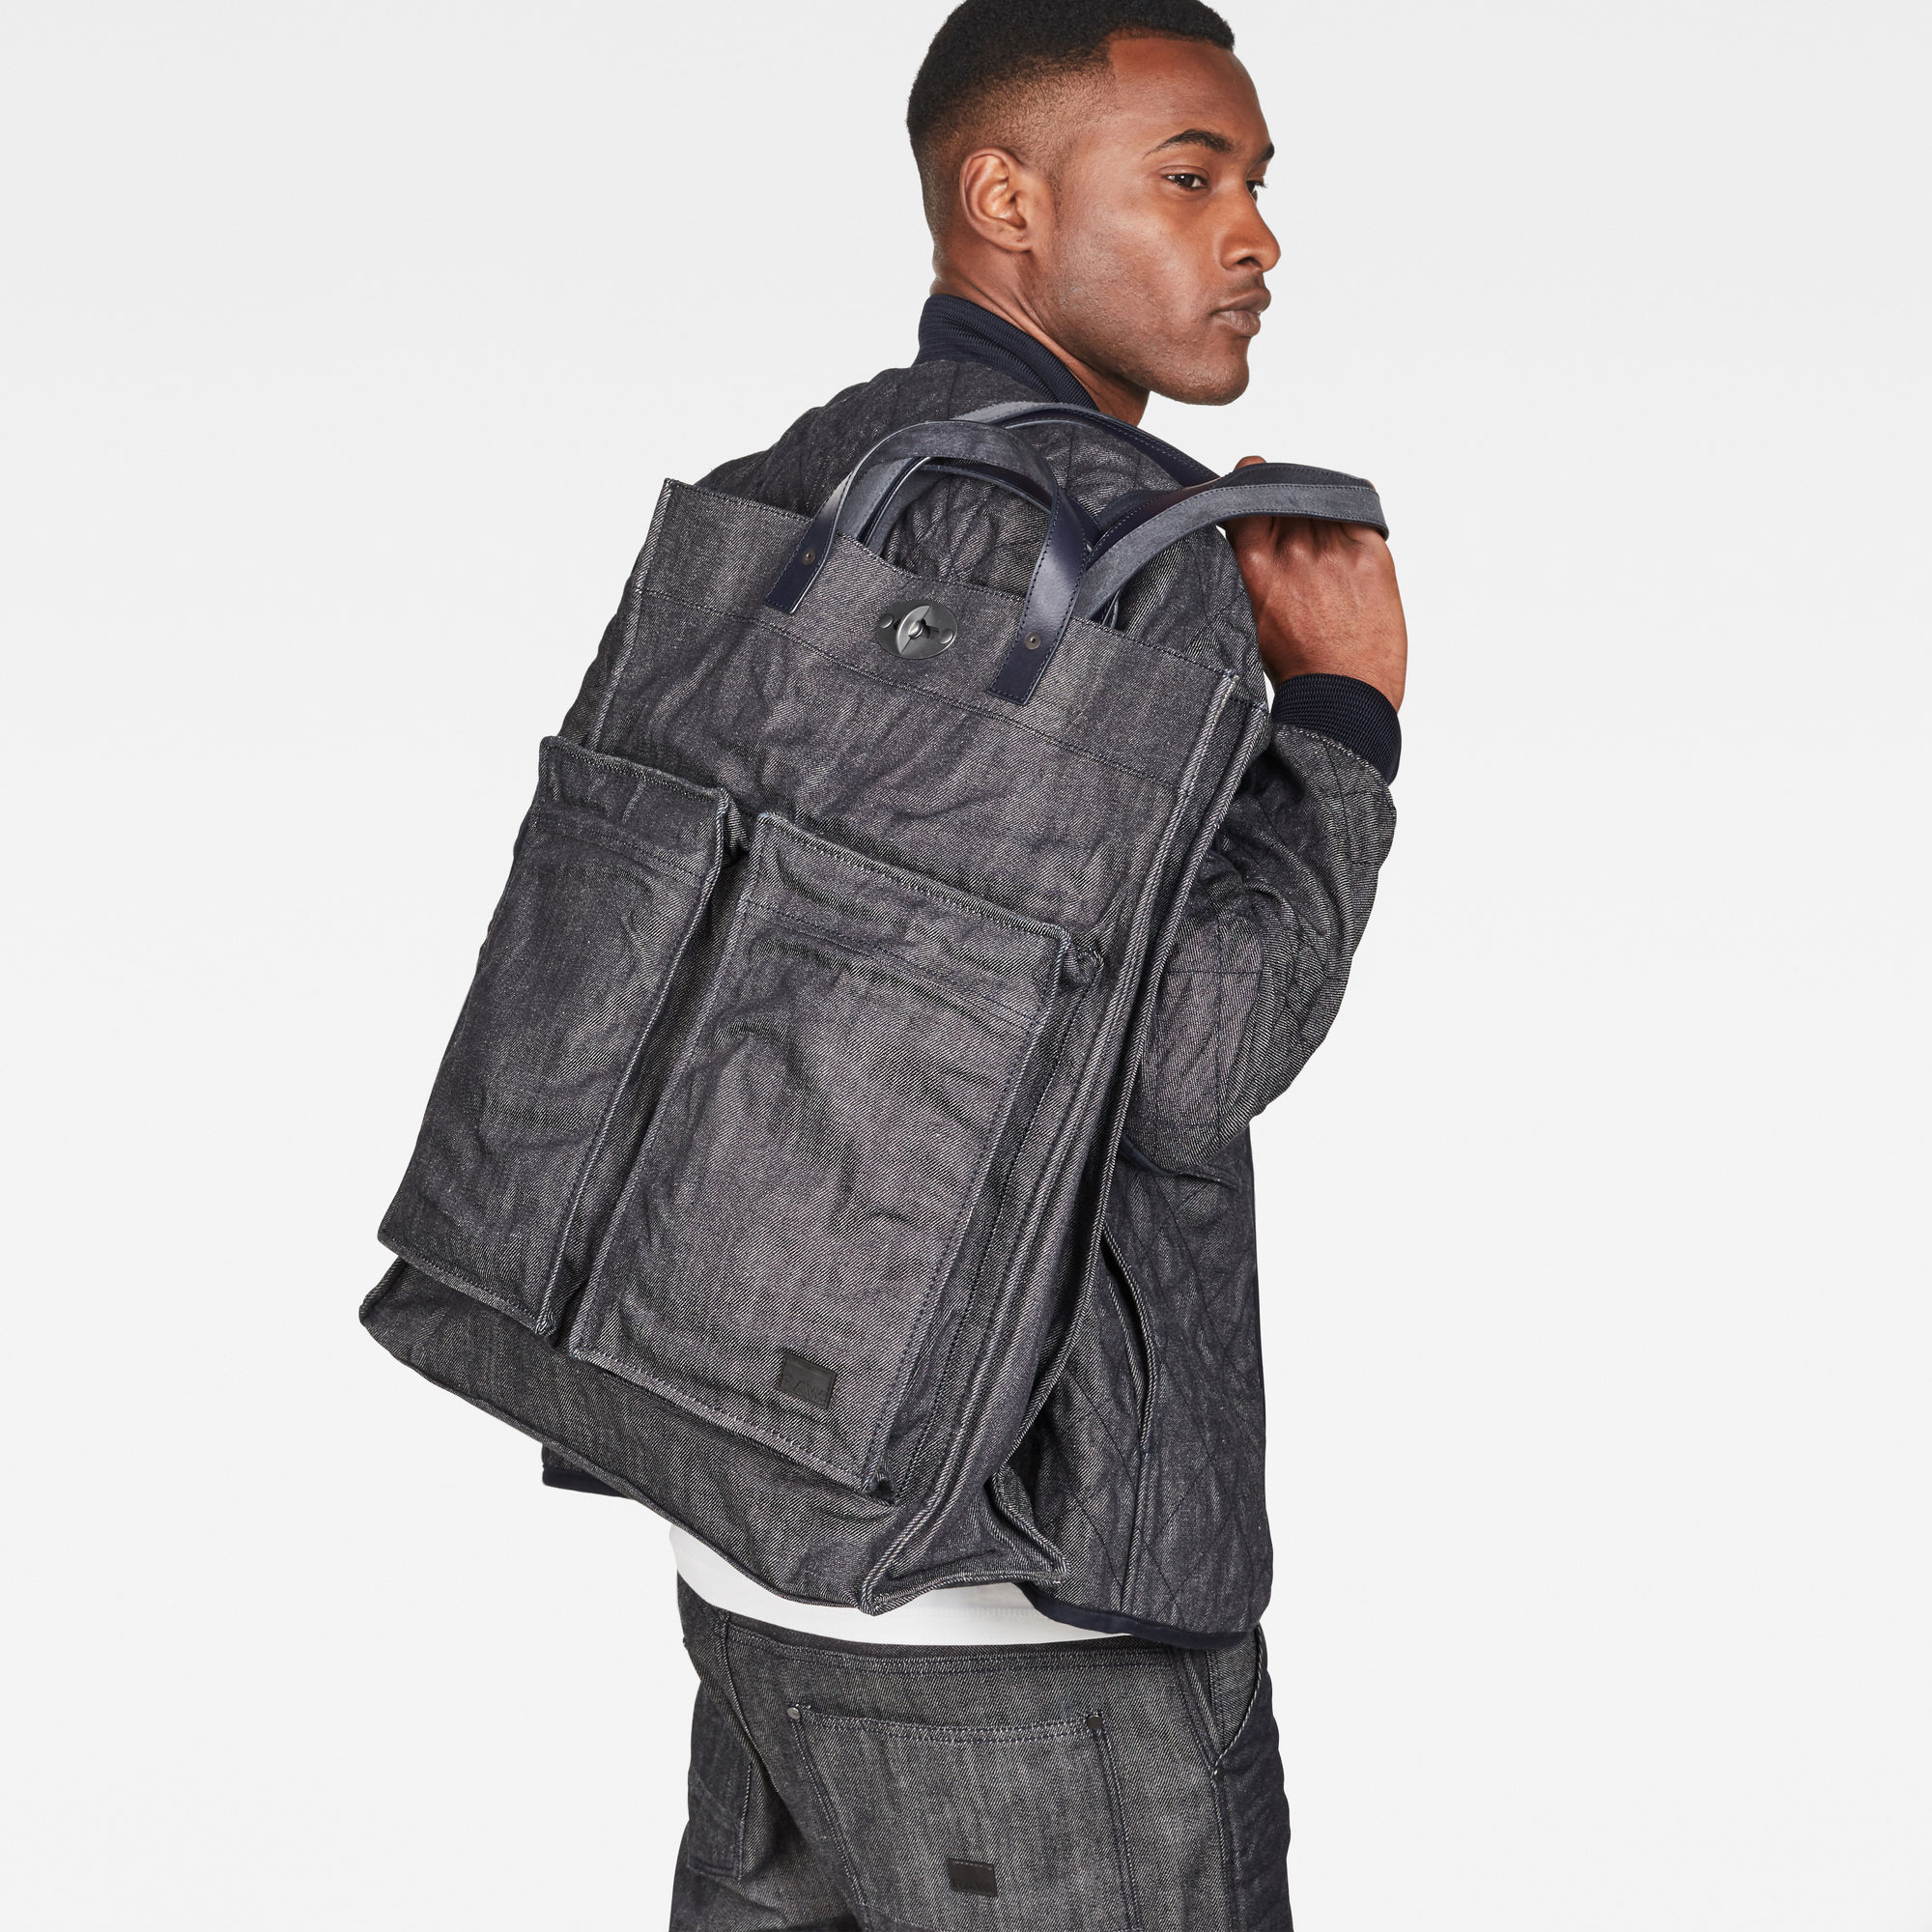 G-Star RAW GSRR Avernus Shopper